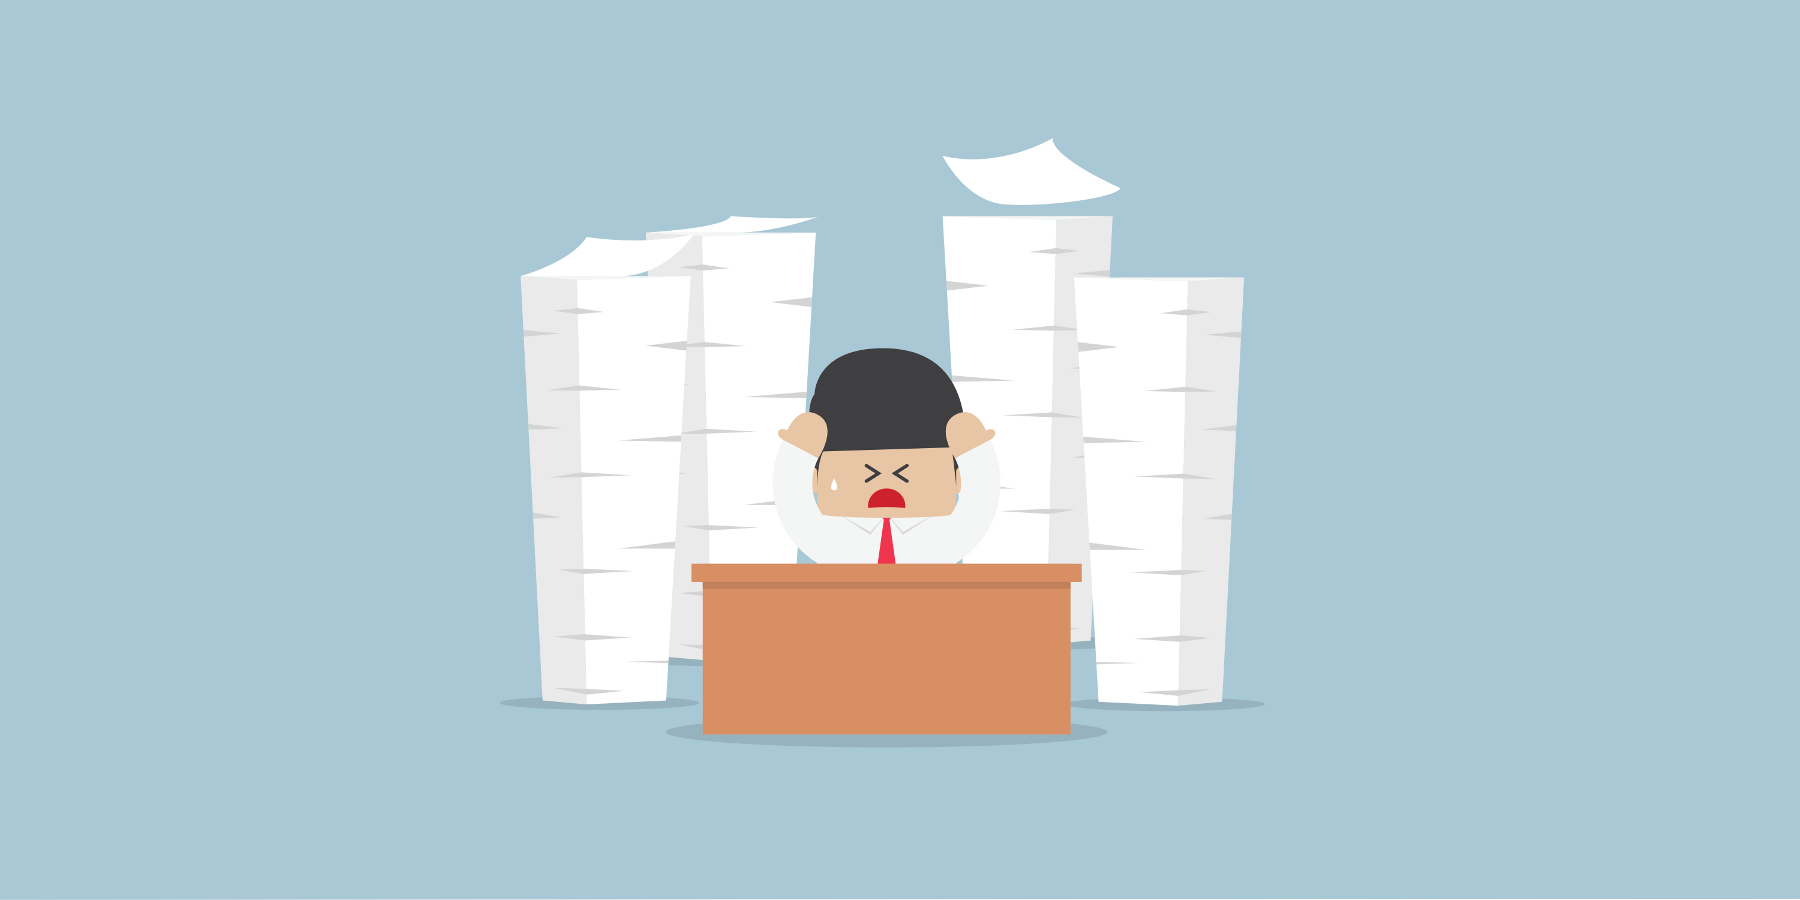 image relating to Printout Designer titled Automated Invoices for Your Store Printout Designer